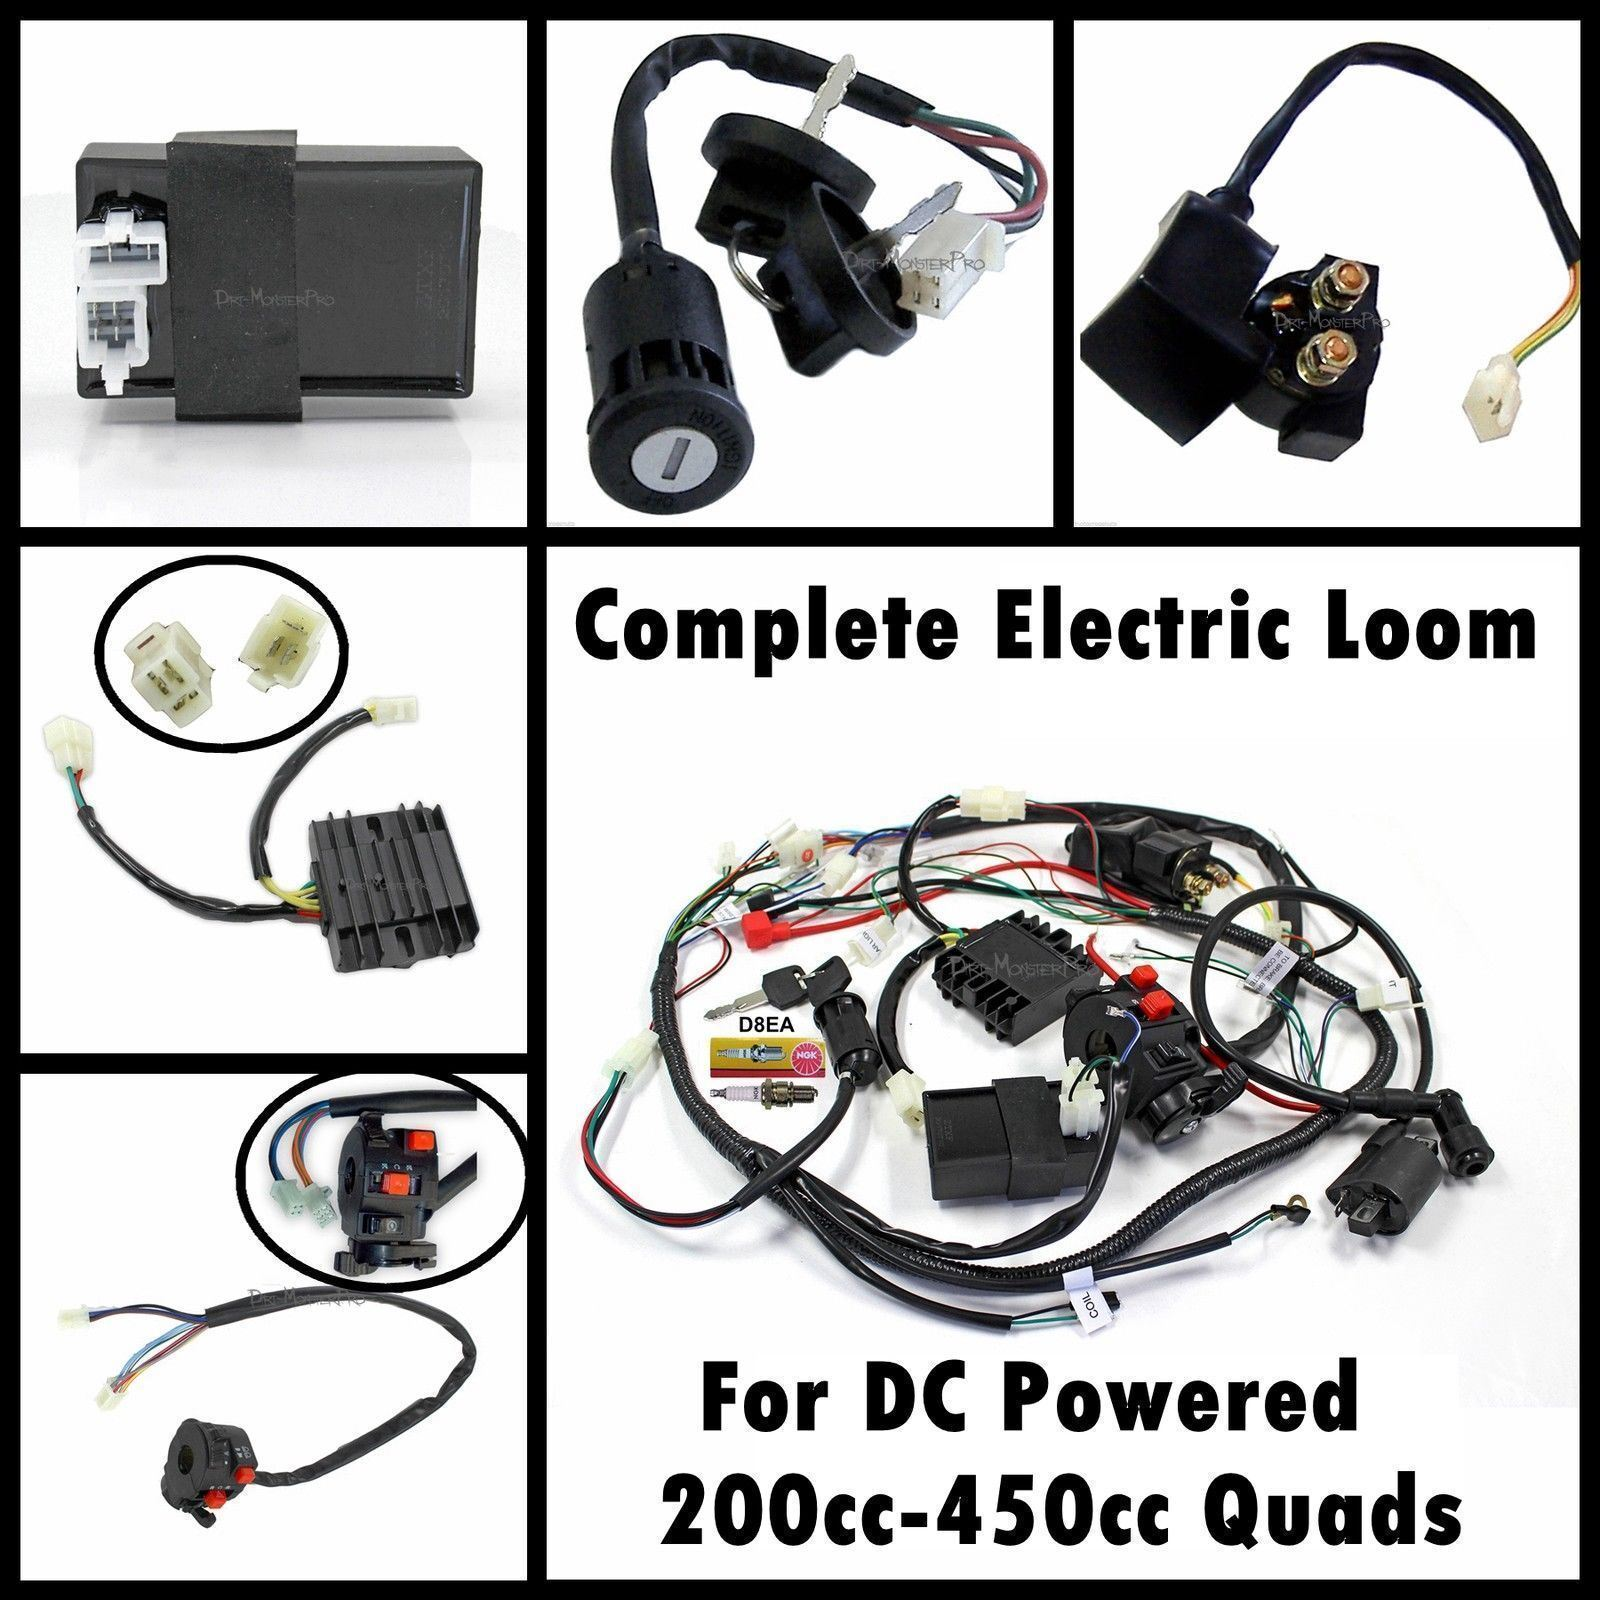 complete engine dc wiring harness wiring loom 200cc 250cc atv quad rh ebay com corsa d wiring harness Trailer Wiring Harness